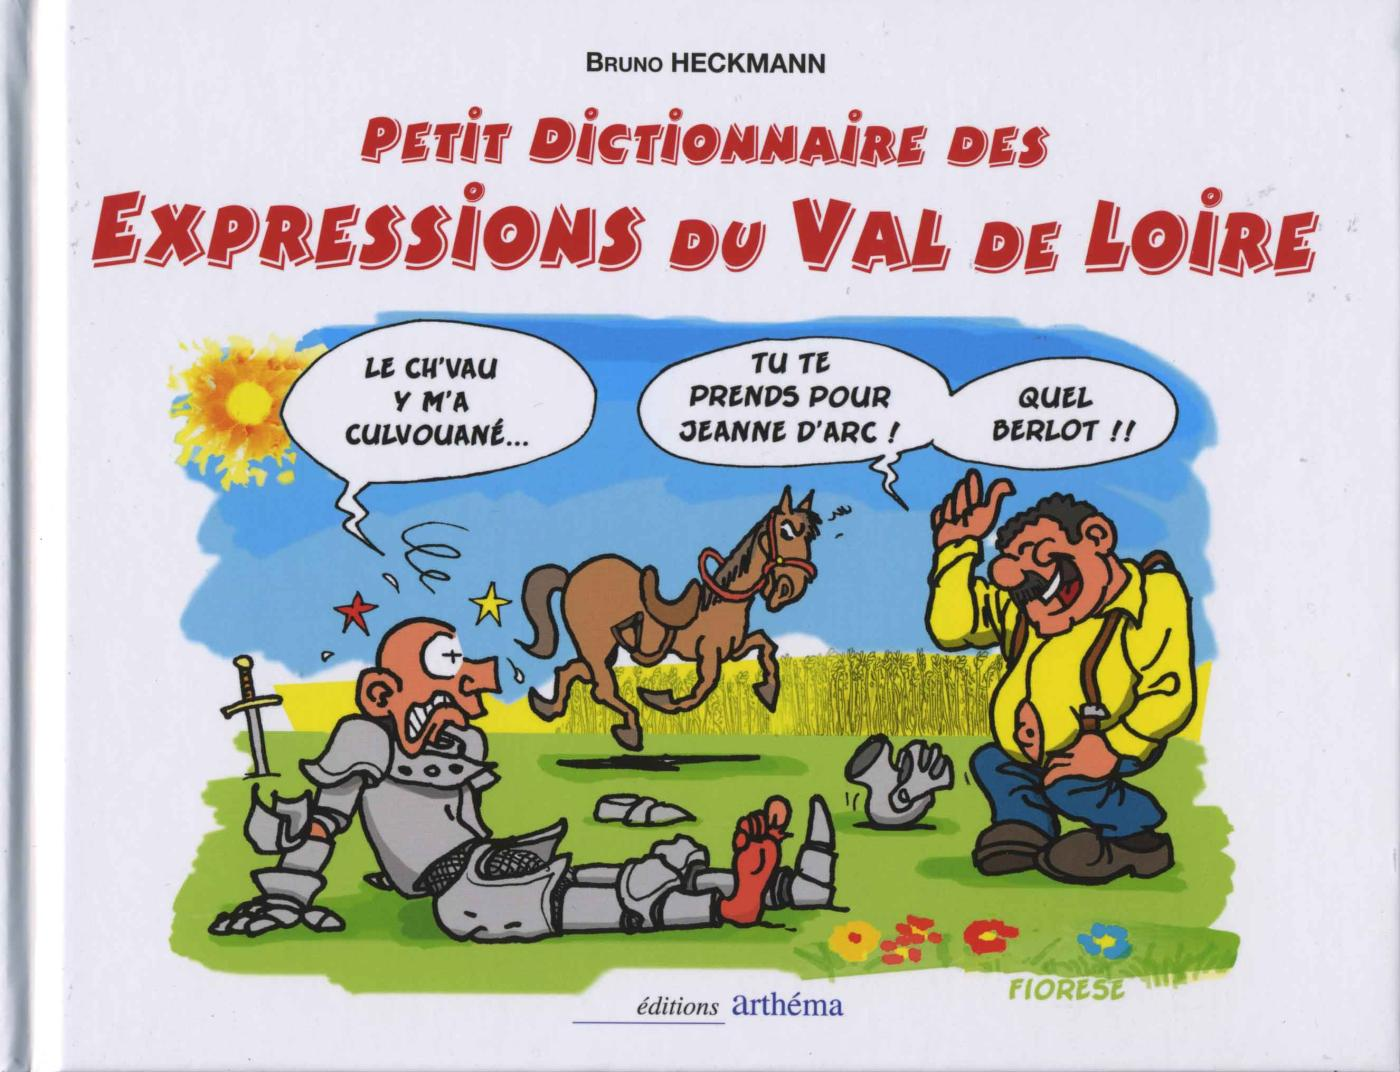 Livre Expressions